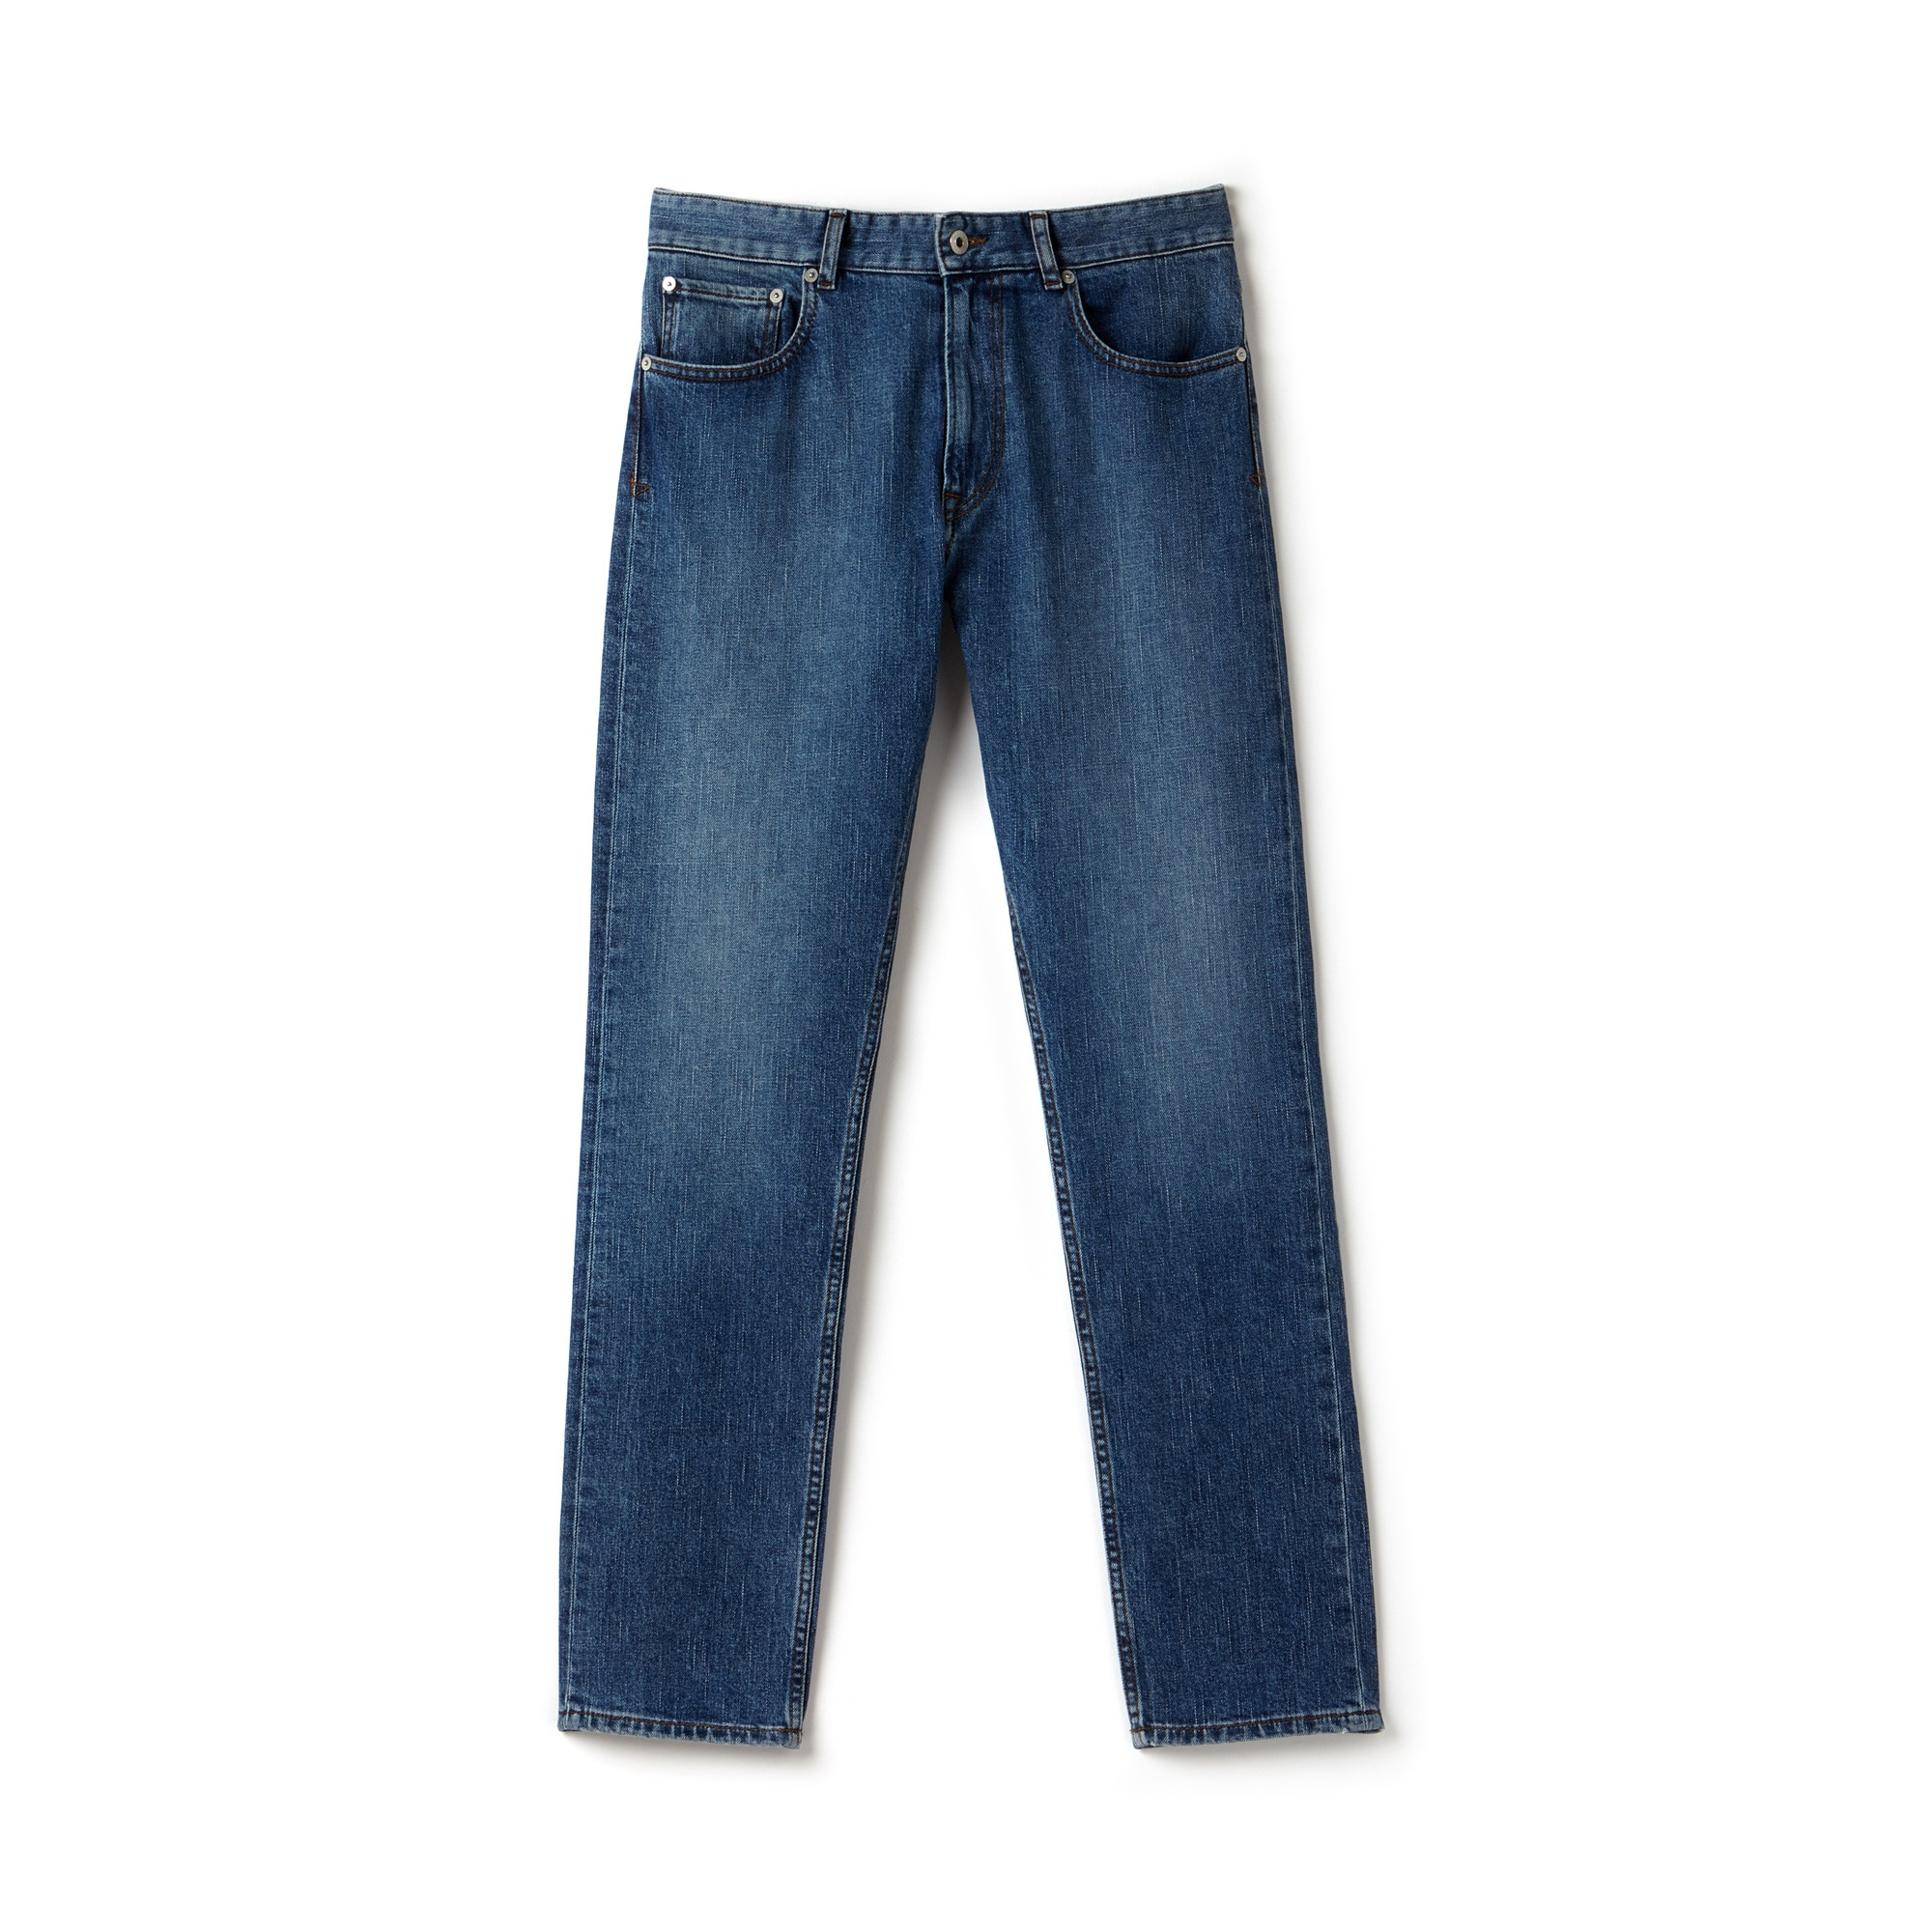 Jean 5 poches slim fit en denim de coton stretch